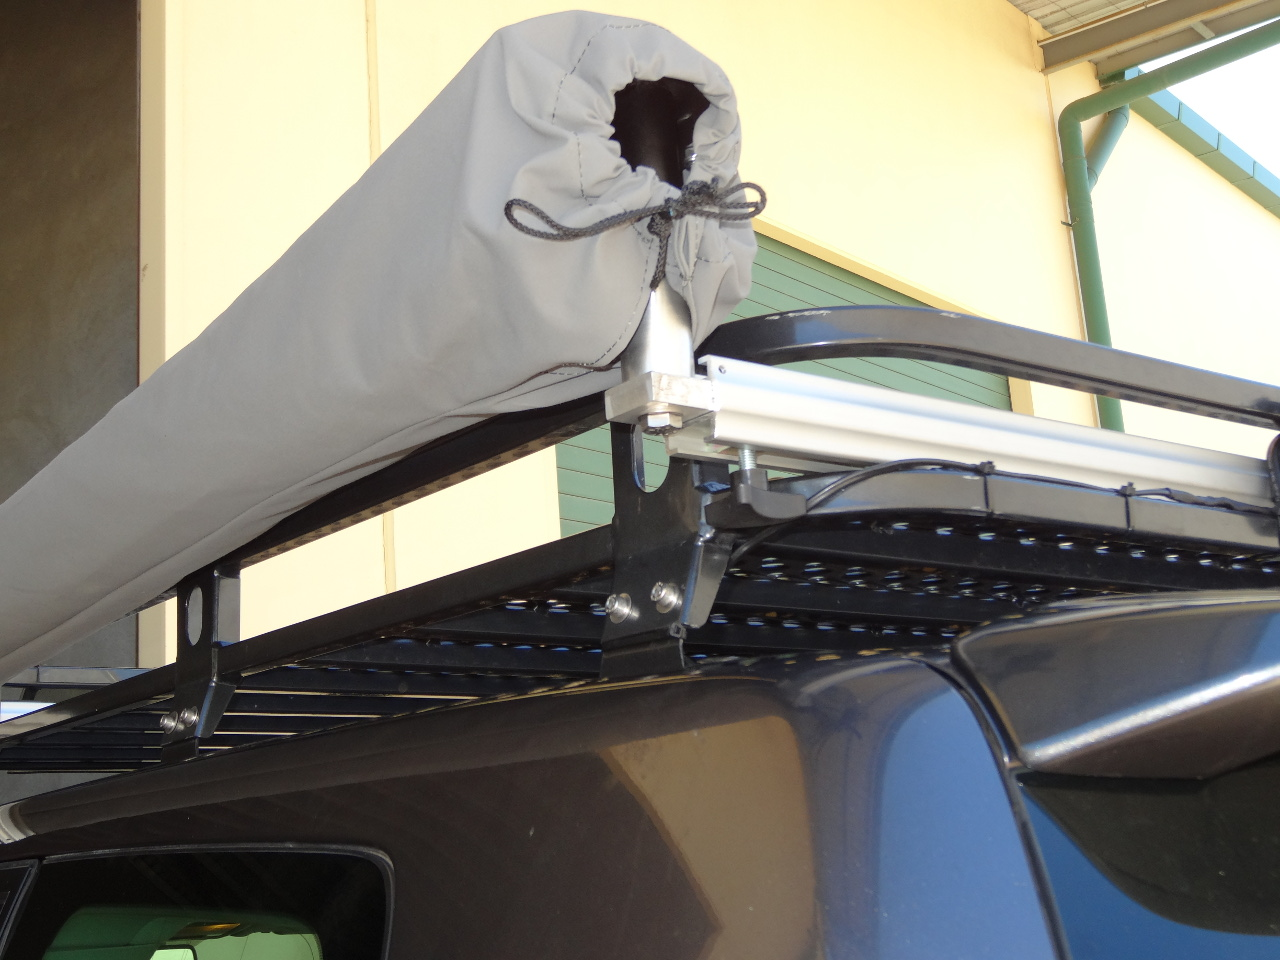 CleverShade packed away vehicle awning